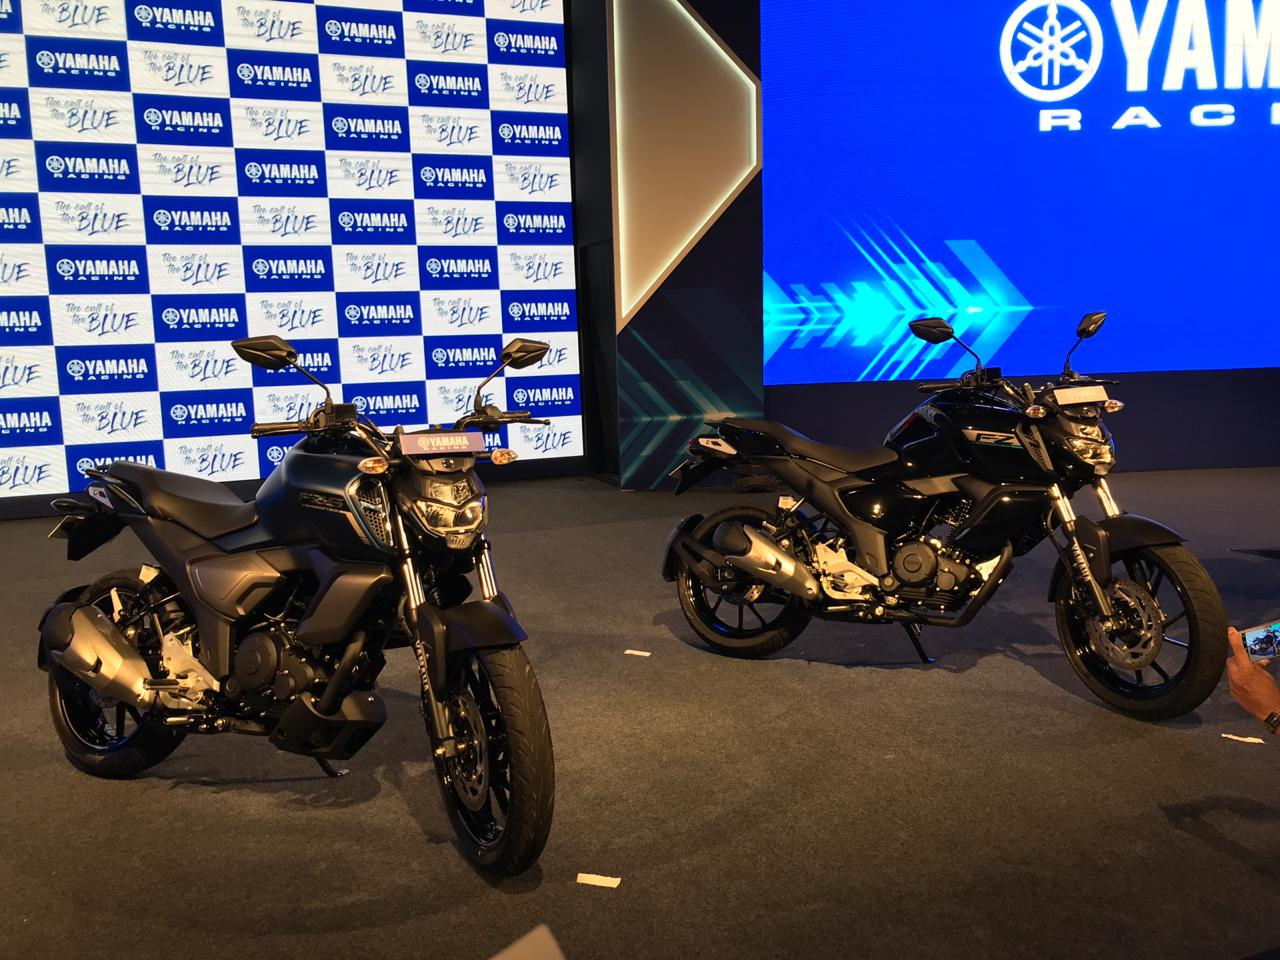 After a rather long wait yamaha has finally unveiled the next generation fz dubbed the fz fi version 3 0 the bike features a number of stylistic and